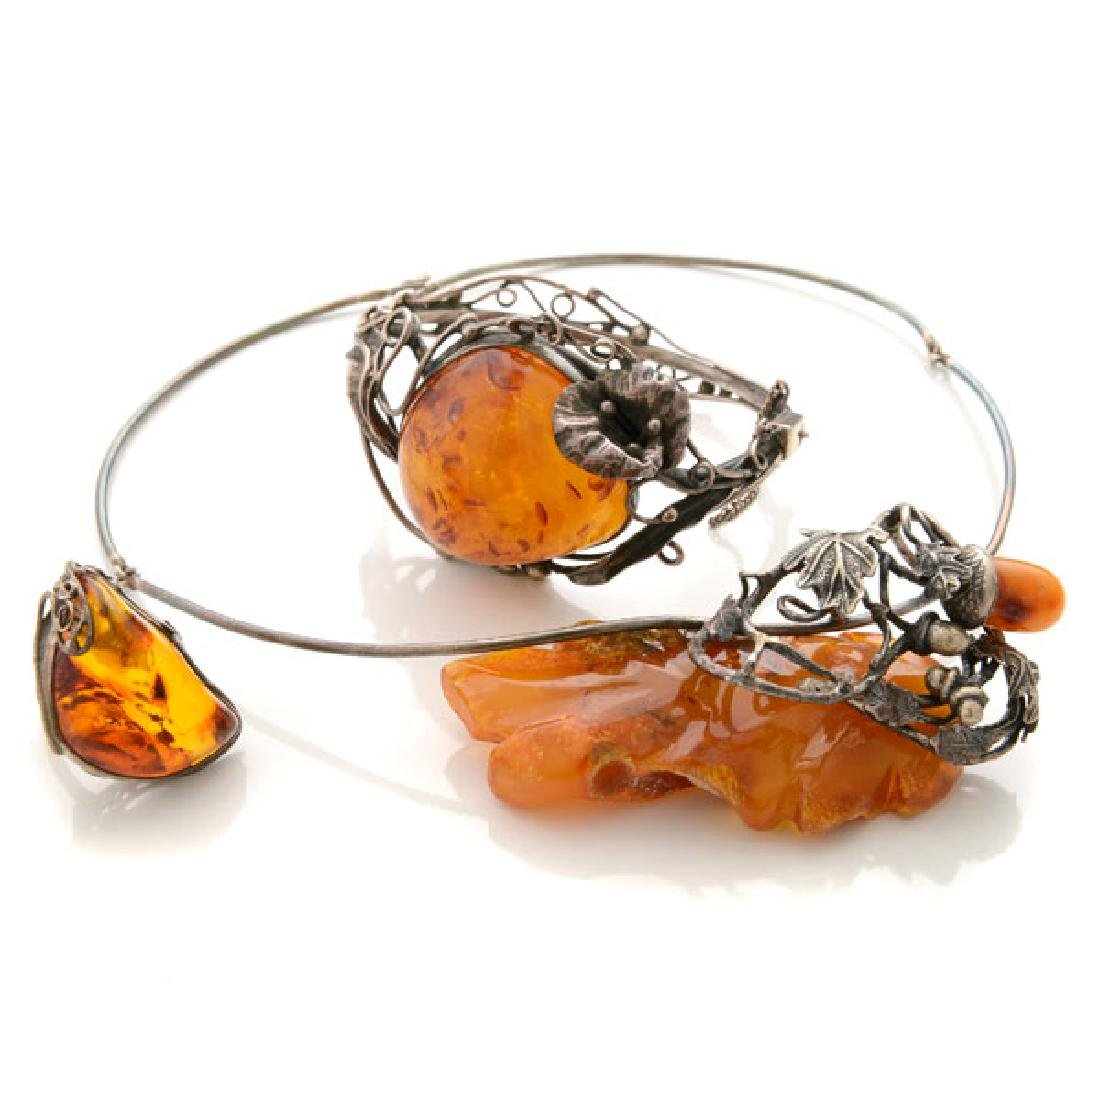 Amber, Silver Jewelry Suite.